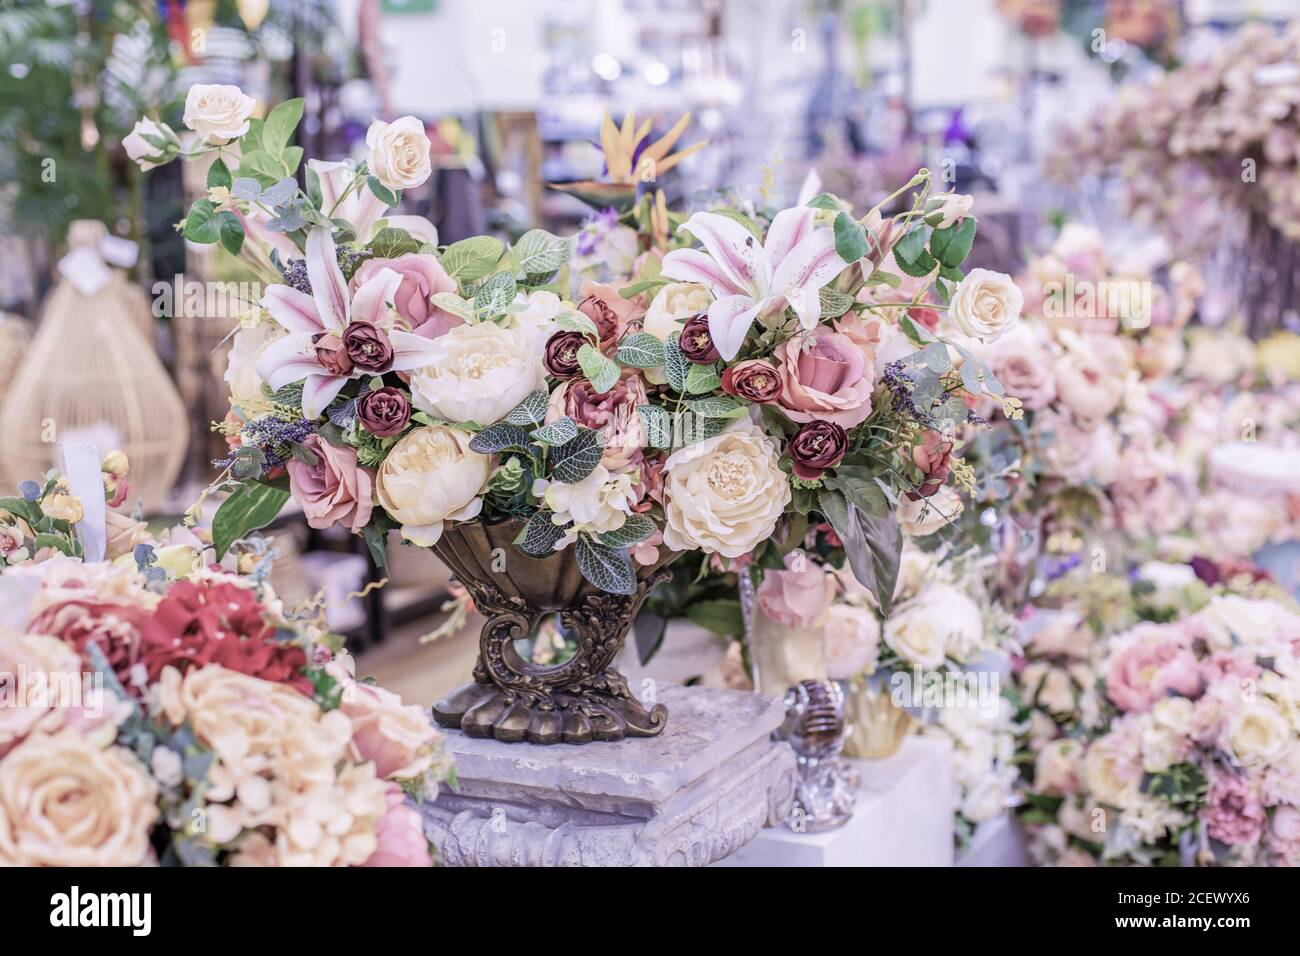 An Elegant Bouquet Of Roses For Home Decor In Pastel Lilac Colors Interior Decoration Artificial Flowers Rose Lily Branch With Green Leaves Romanti Stock Photo Alamy